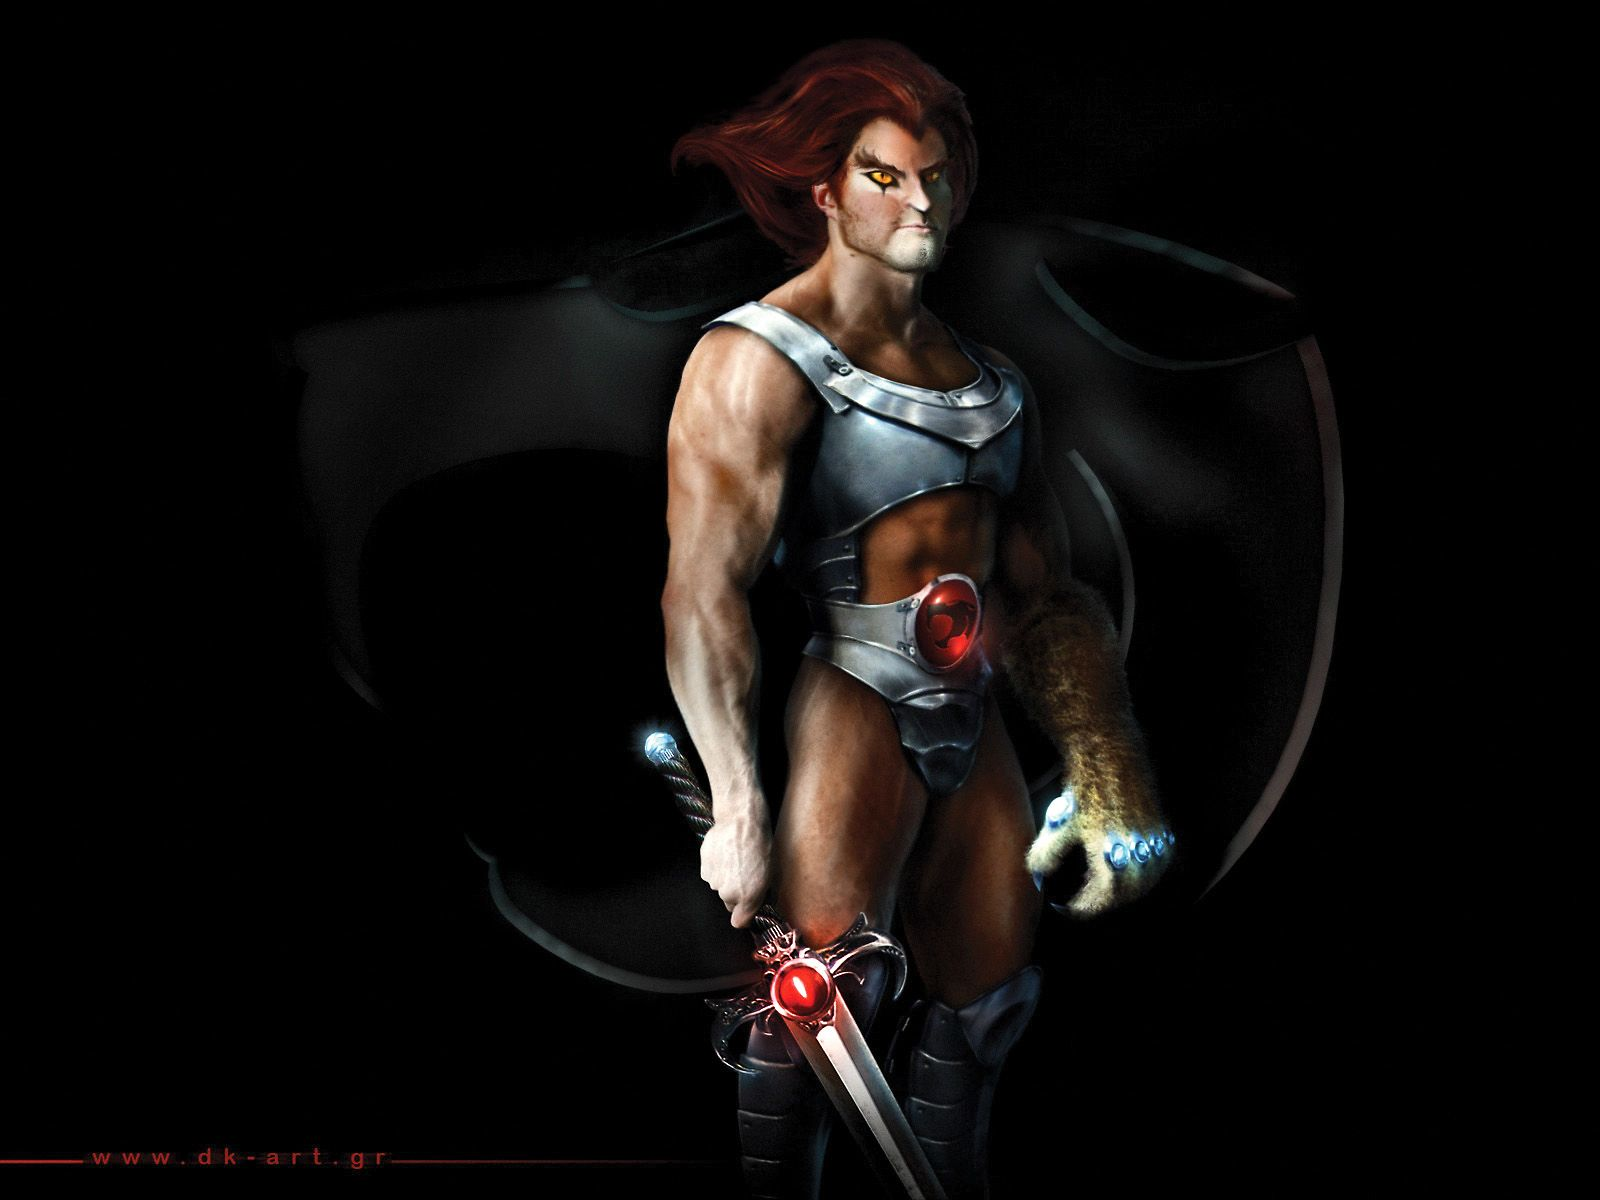 159 best thundercats images on pinterest | thundercats, comic art